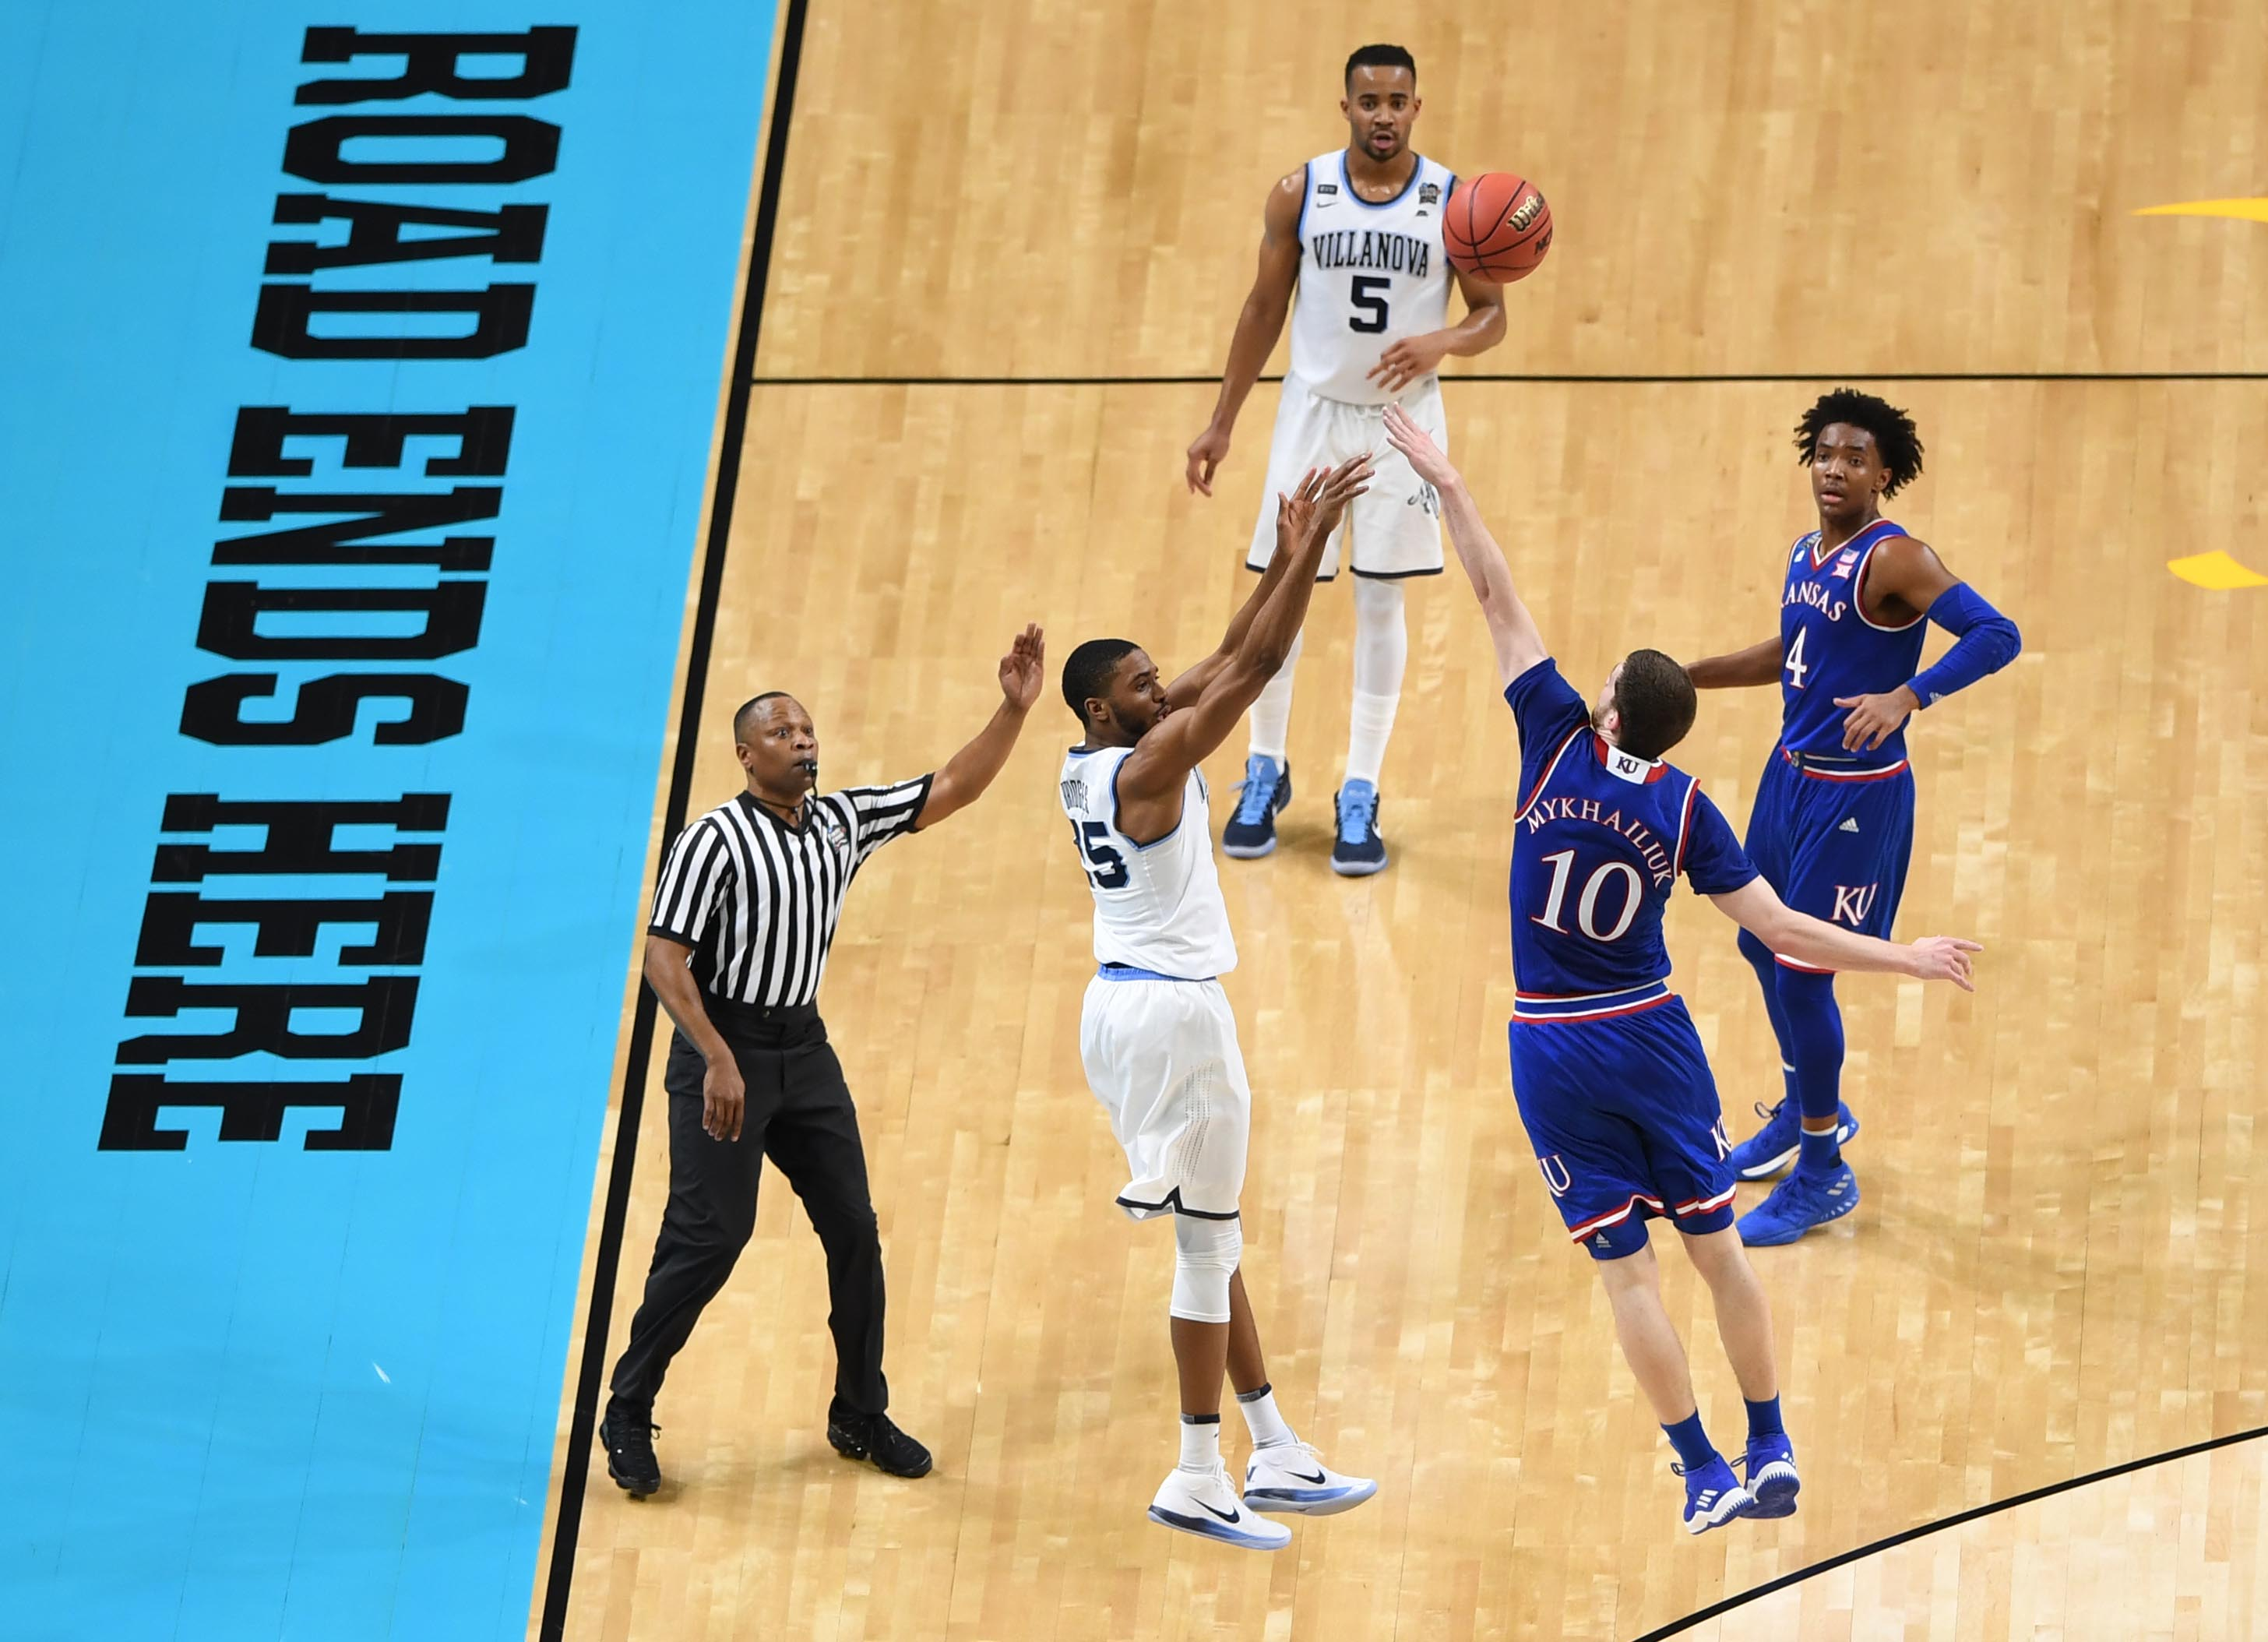 Mar 31, 2018; San Antonio, TX, United States; Villanova Wildcats guard Mikal Bridges (25) shoots a three pointer over Kansas Jayhawks guard Sviatoslav Mykhailiuk (10) in the first half in the semifinals of the 2018 men's Final Four at Alamodome. Mandatory Credit: Shanna Lockwood-USA TODAY Sports